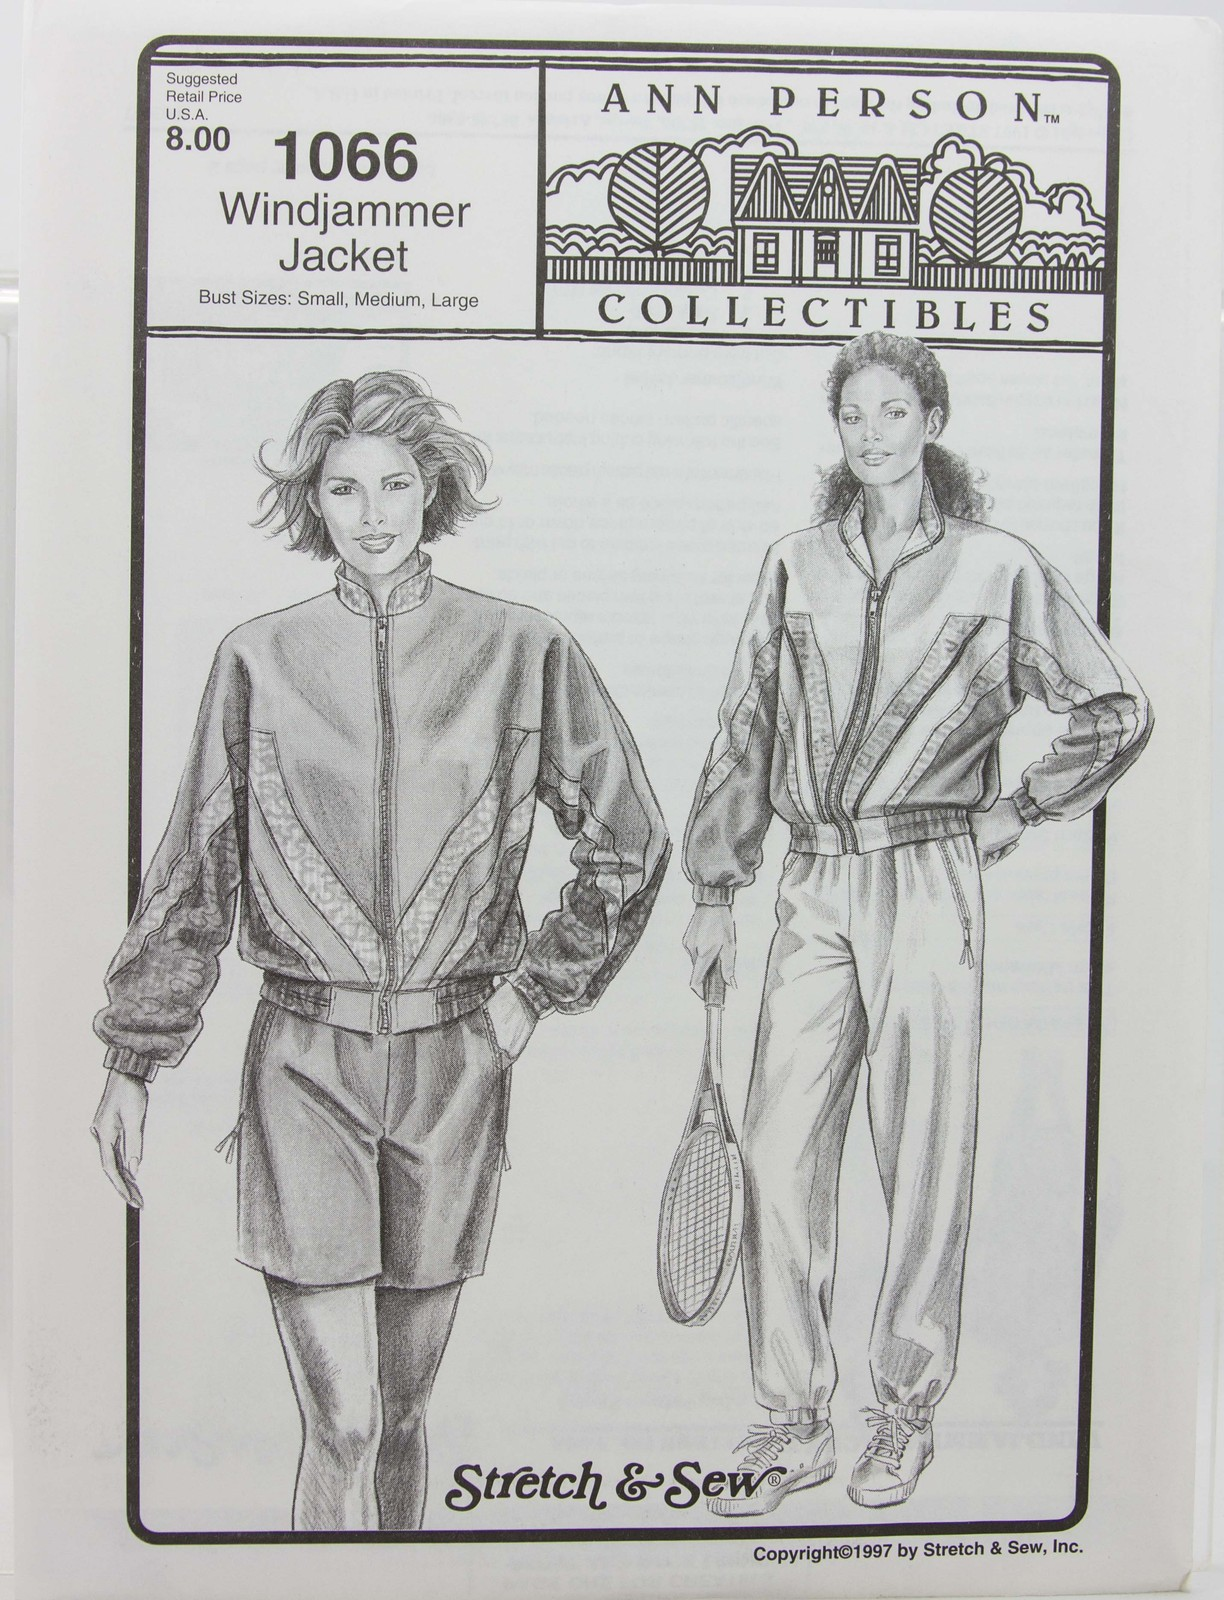 Stretch & Sew Sewing Pattern- Ann Person Collectibles #1066 -Windjammer Jacket